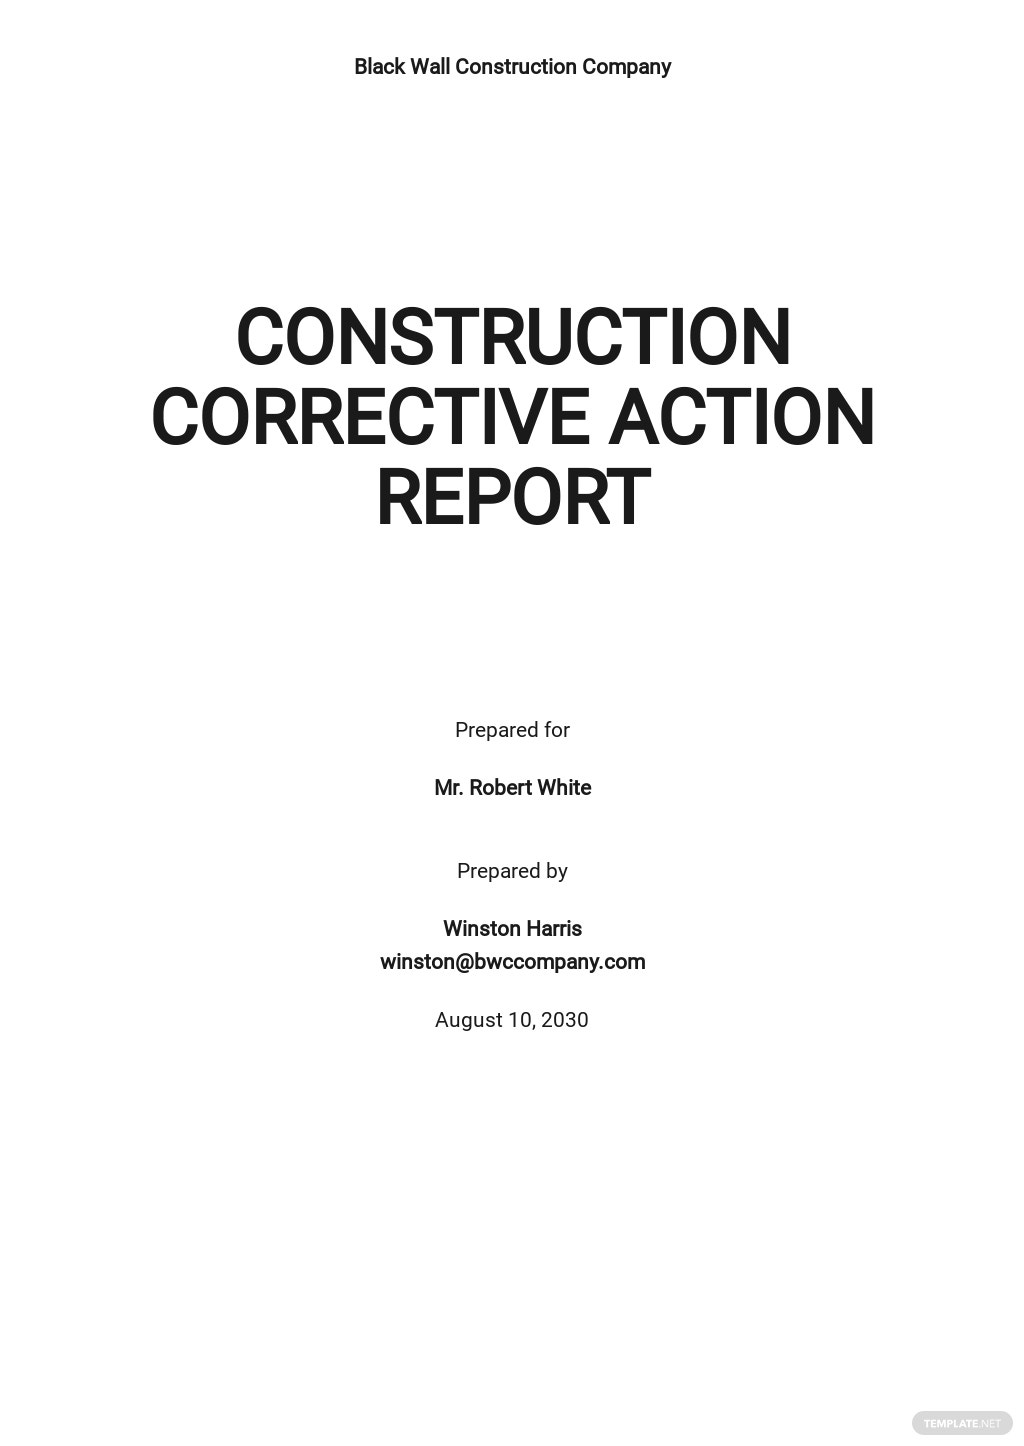 Construction Corrective Action Report Template